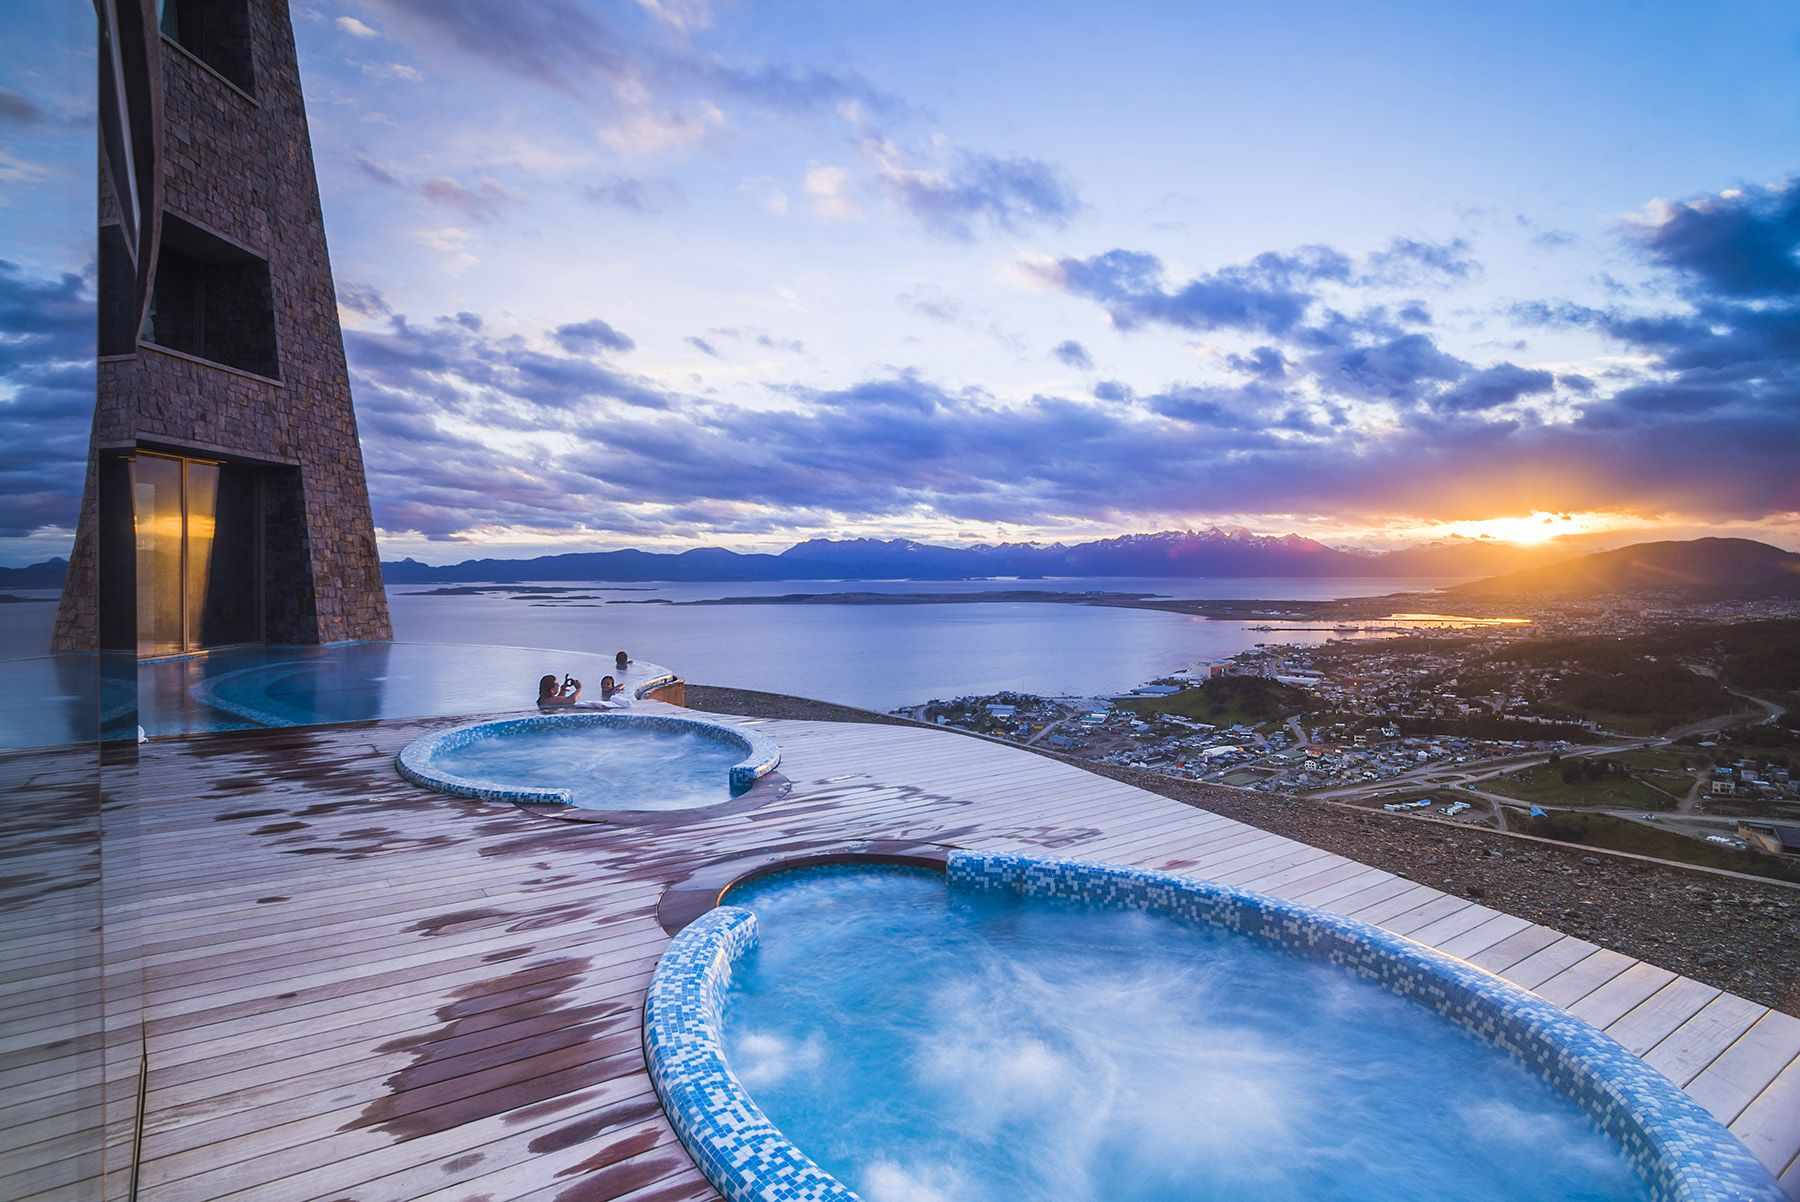 Outdoor Swimming Pool And Jacuzzi At Sunset Hotel Arakur Ushuaia Resort Spa